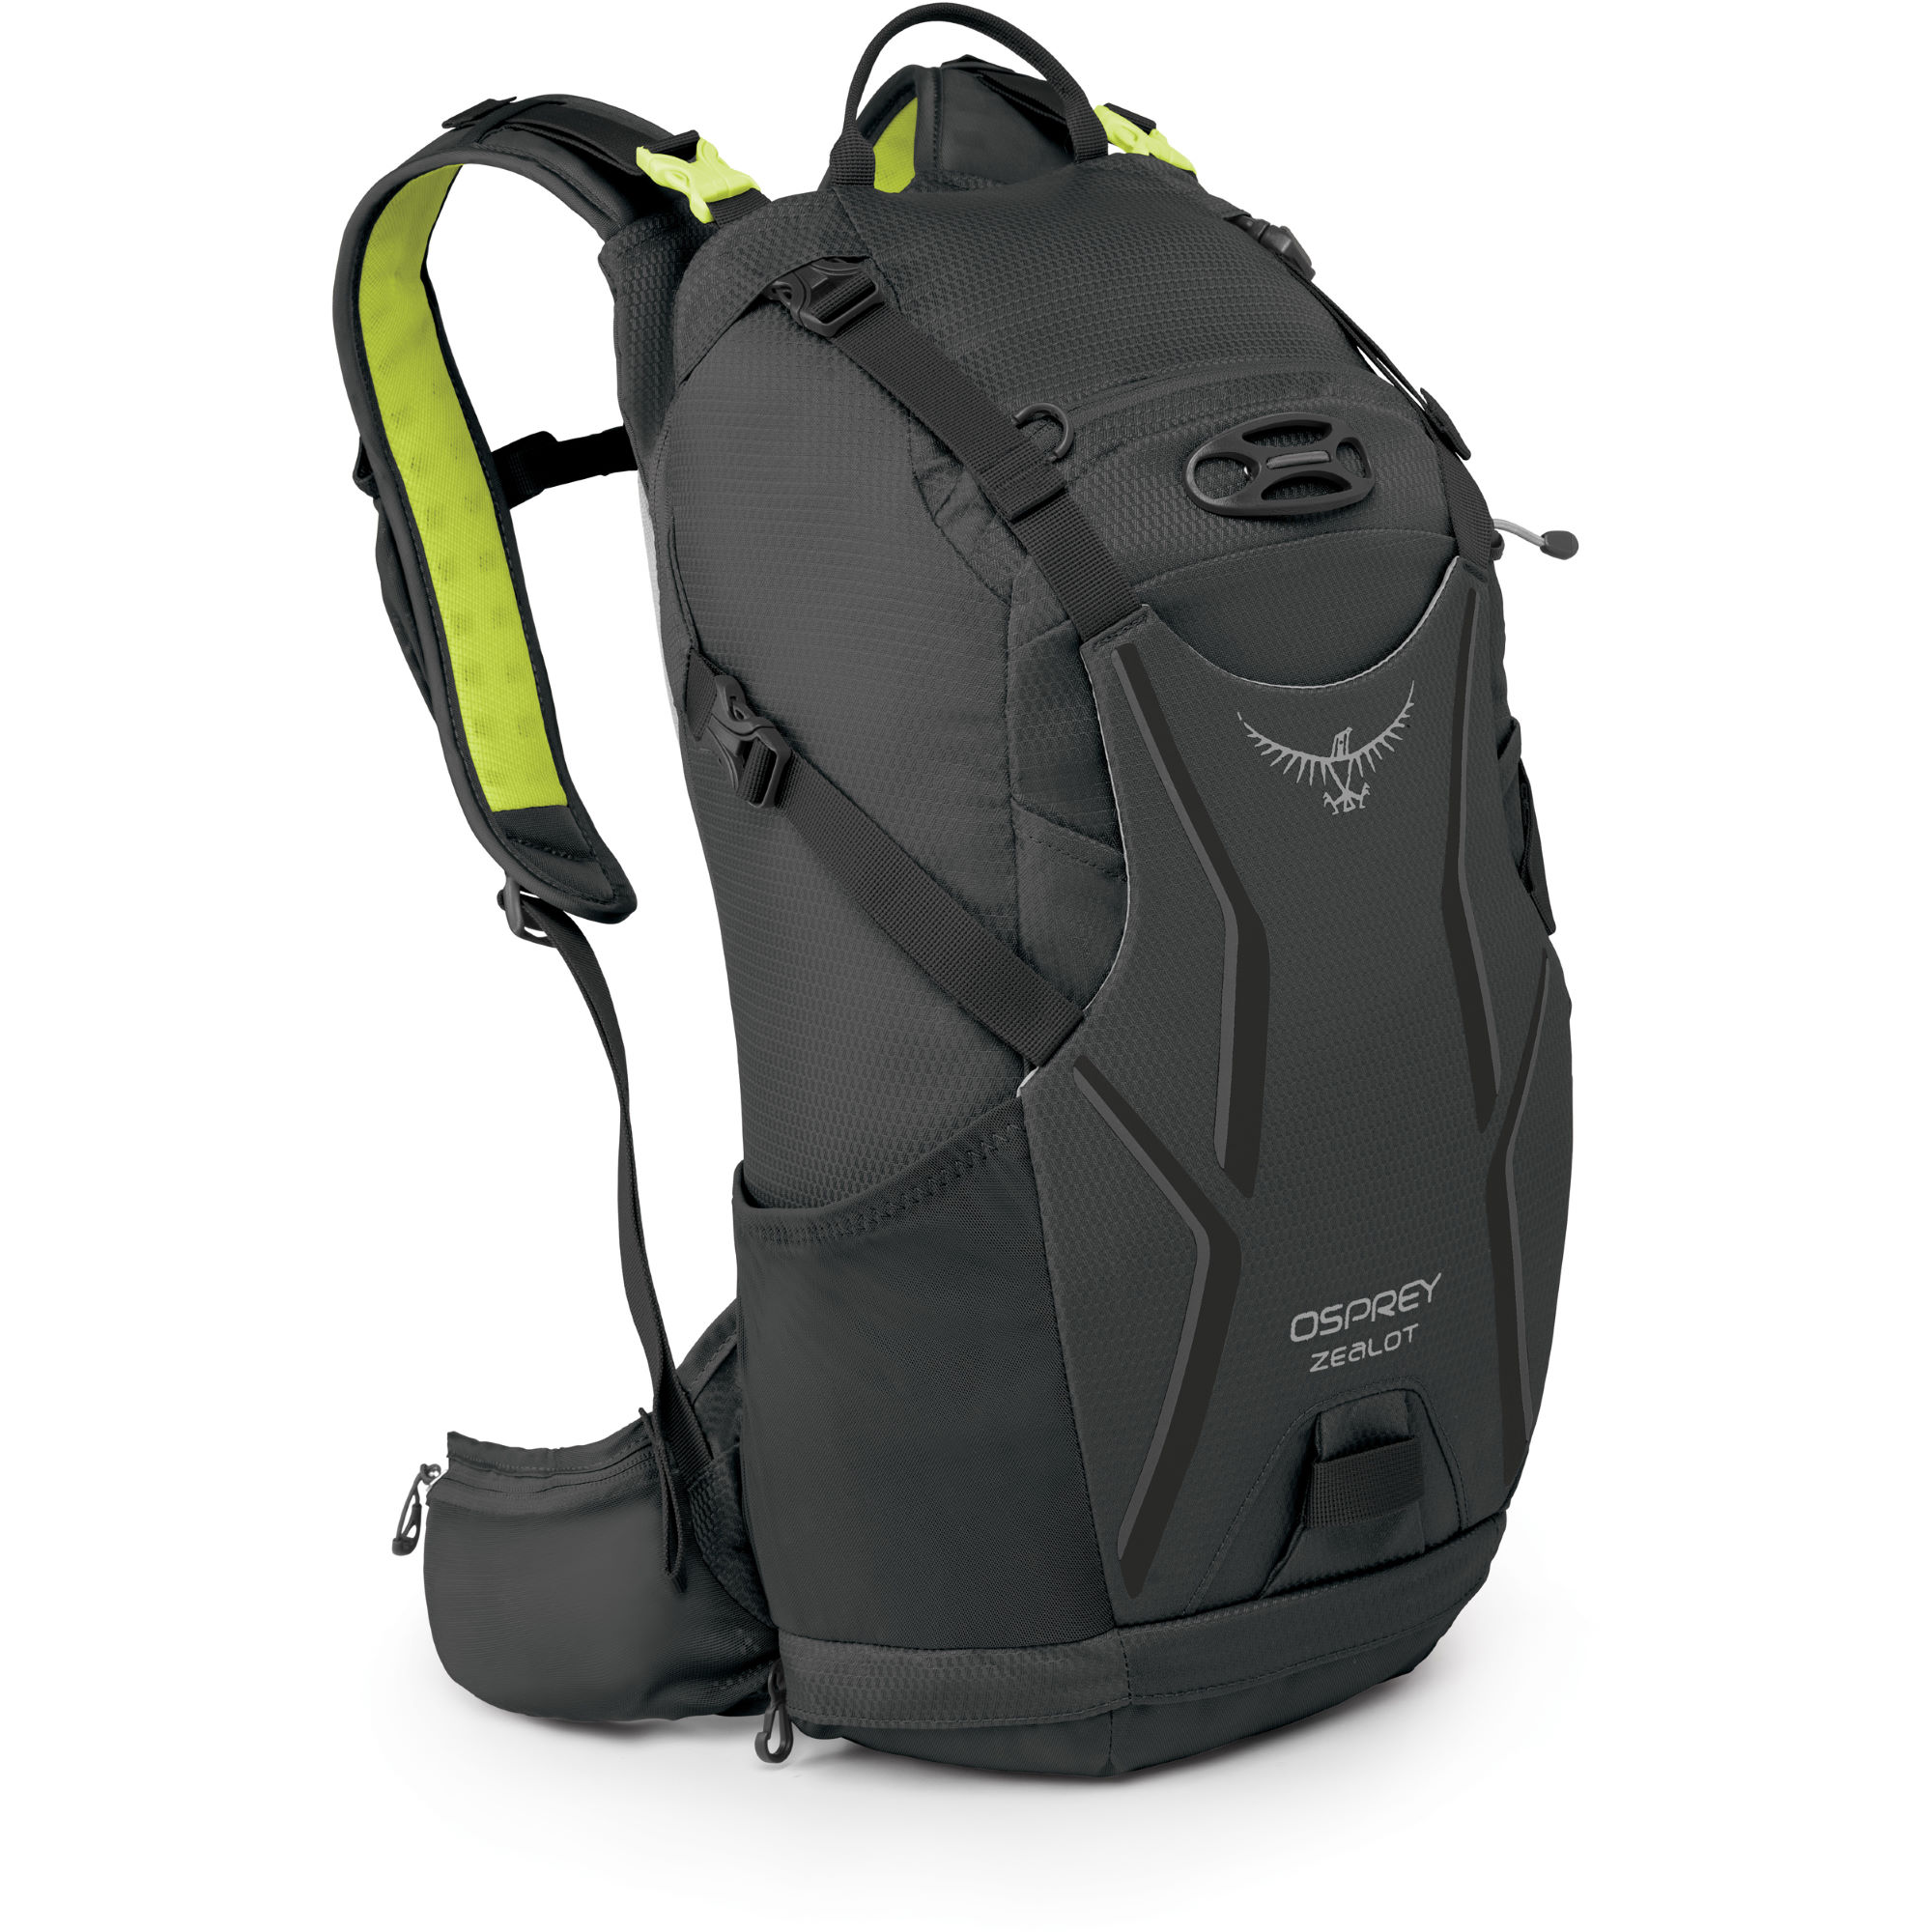 Osprey Zealot 15 - First Look